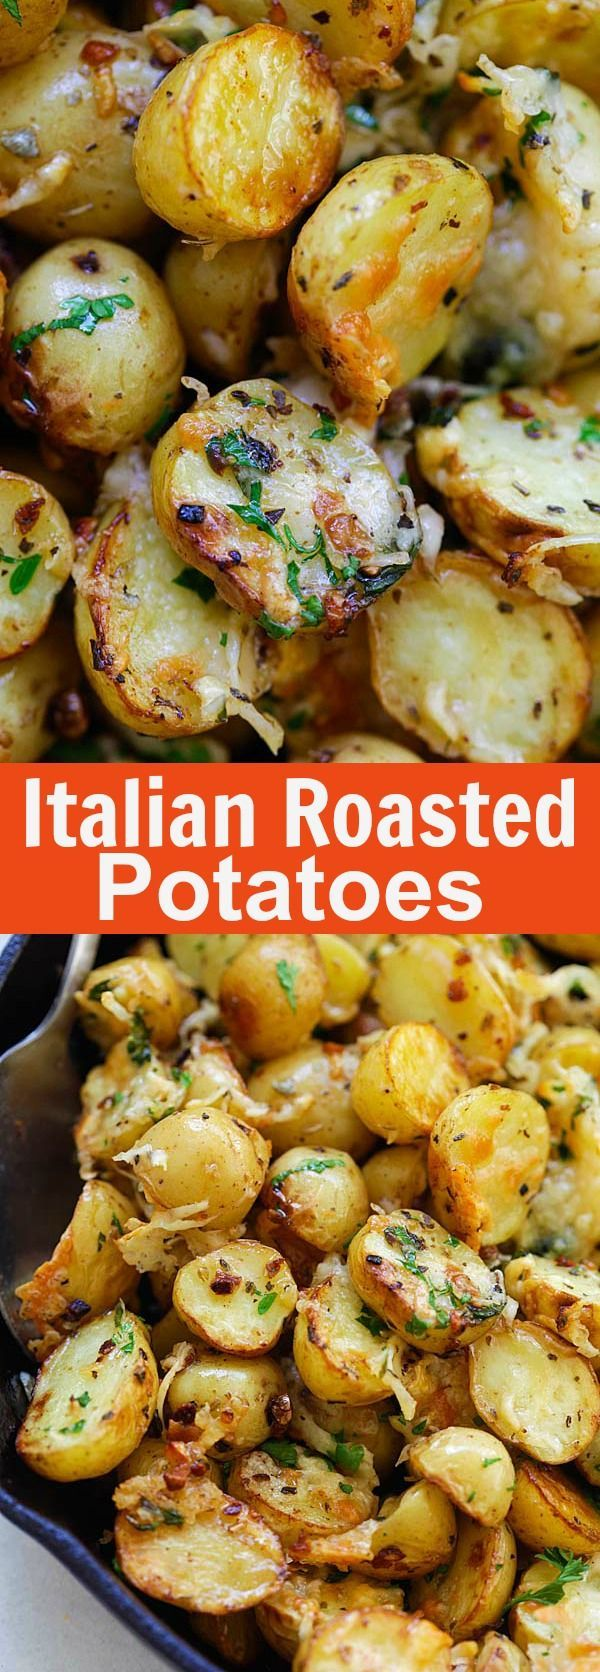 Italian Roasted Potatoes Buttery Cheesy Oven Roasted Potatoes With Italian Seasoning Garlic Paprika And Parmesan Chees Recipes Italian Recipes Food Dishes